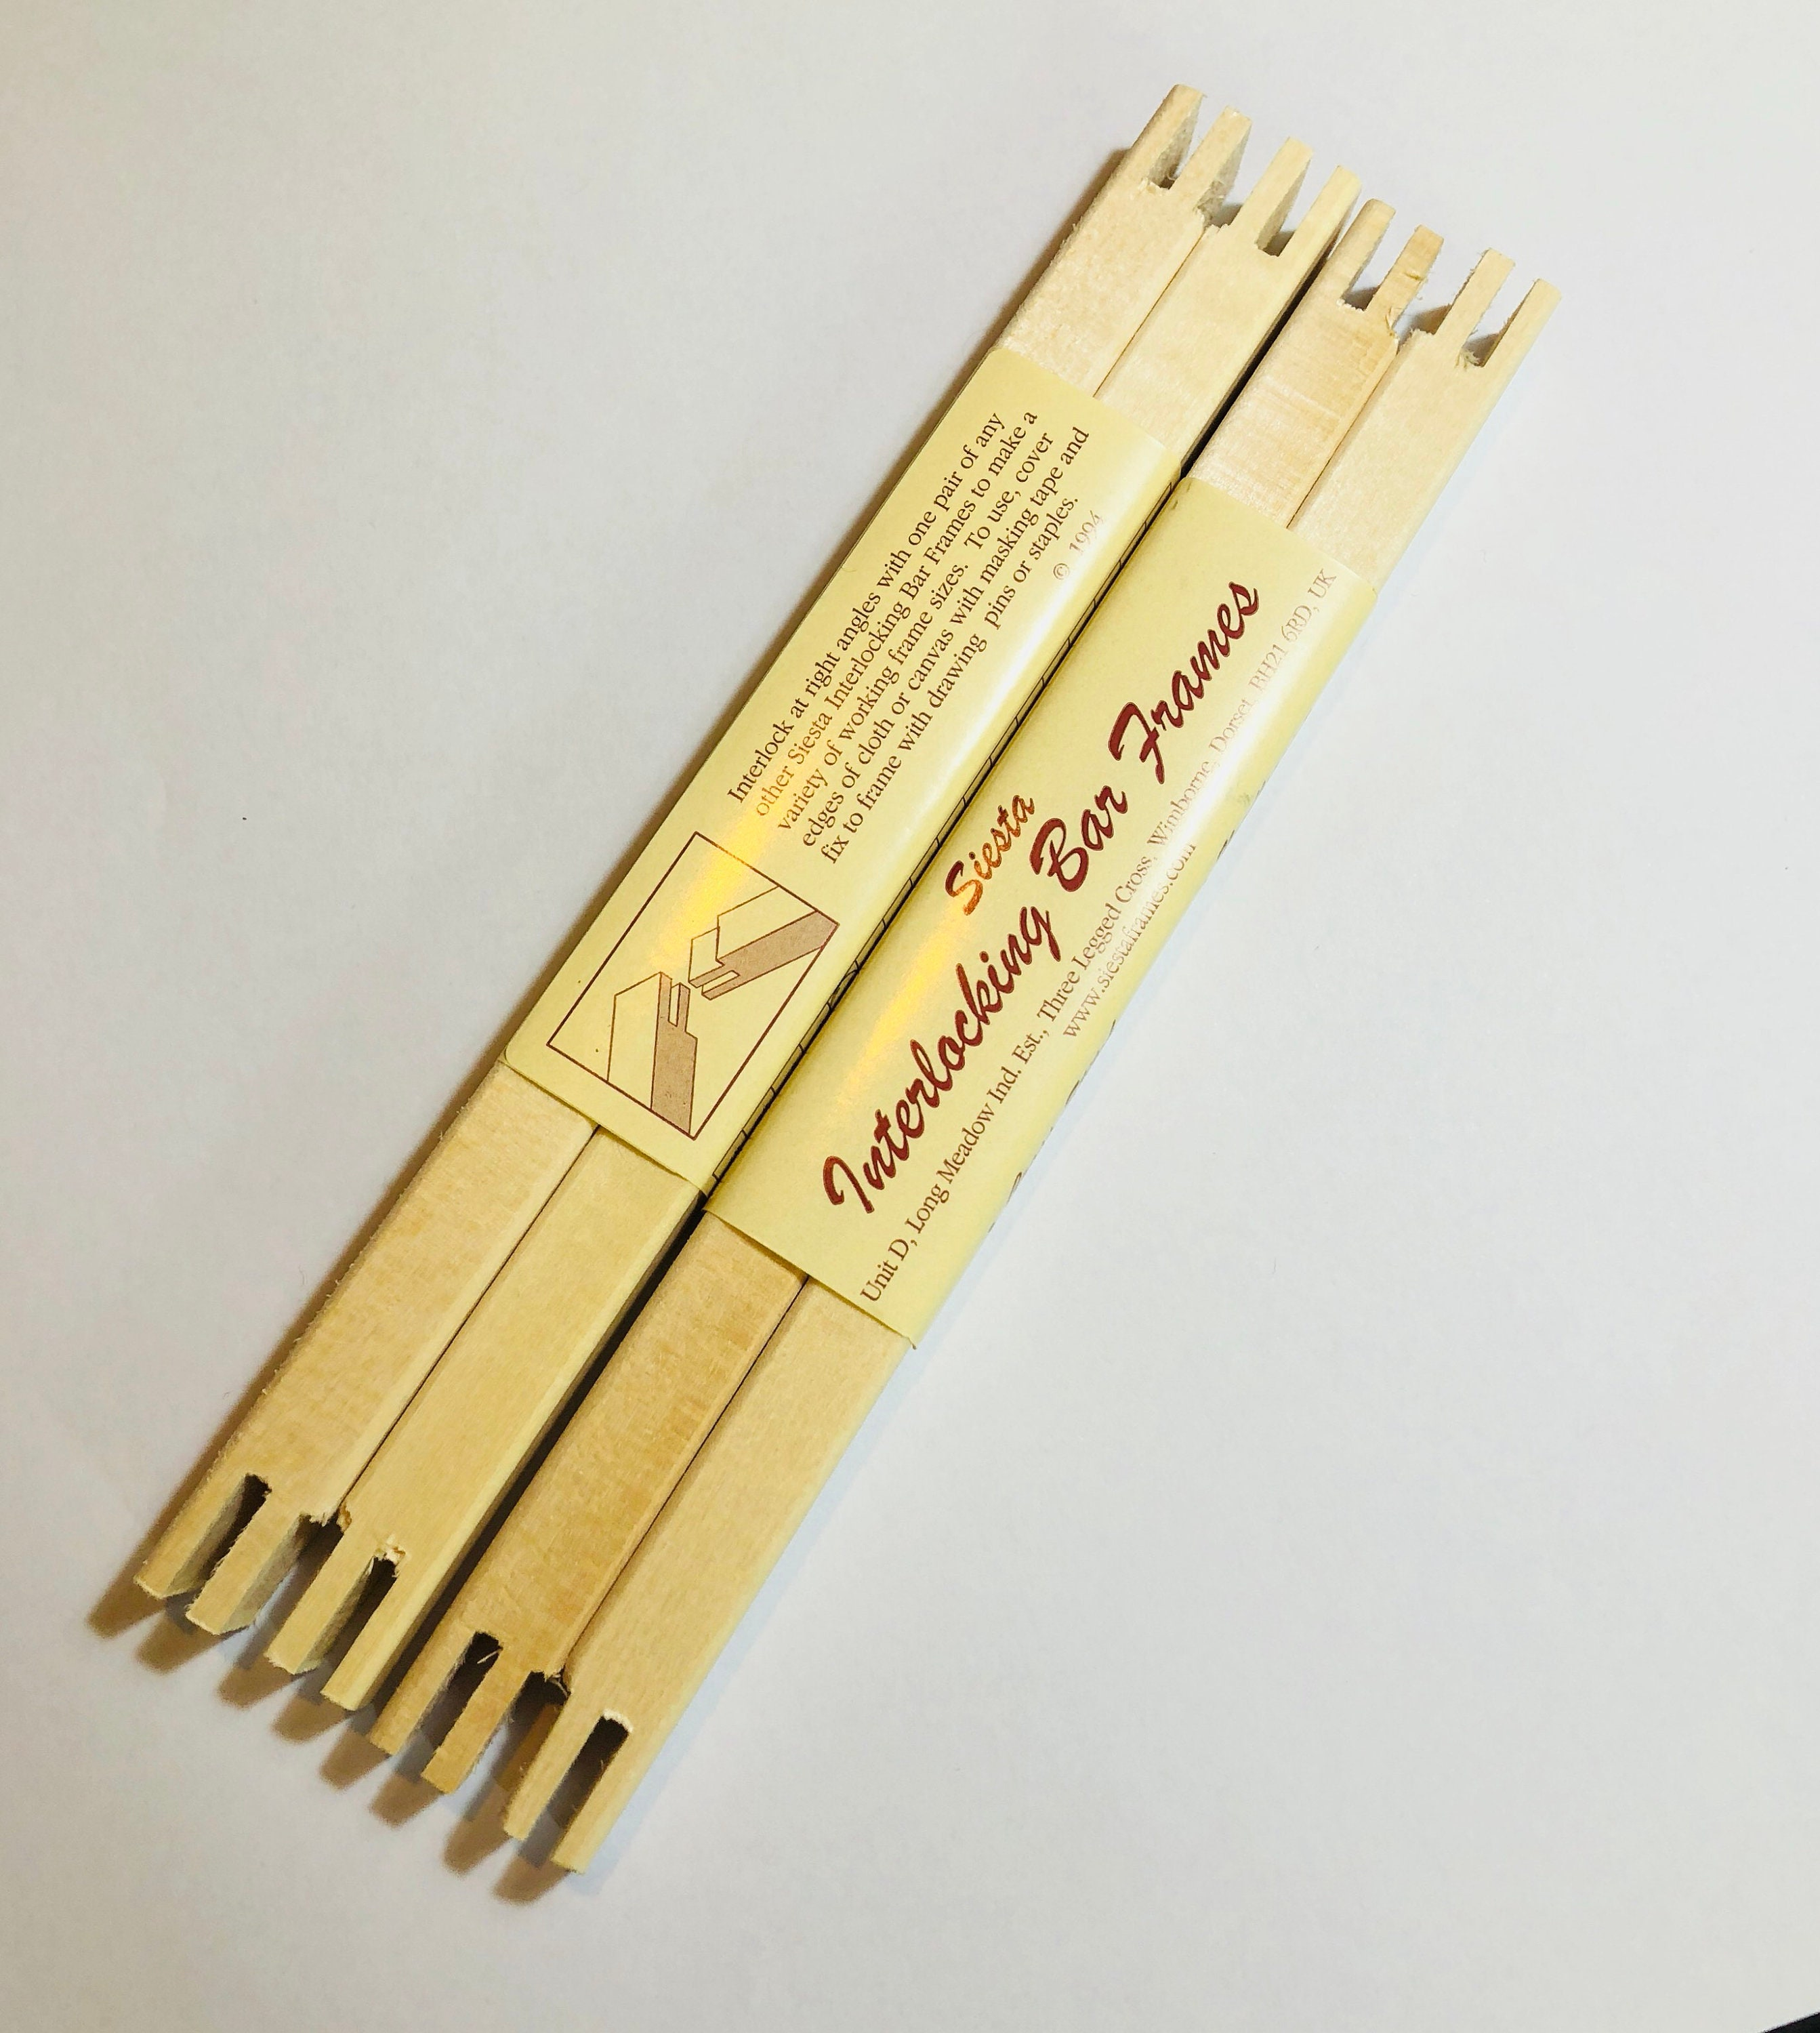 Bar frames for cross stitch, embroidery, needlepoint, stretcher bars